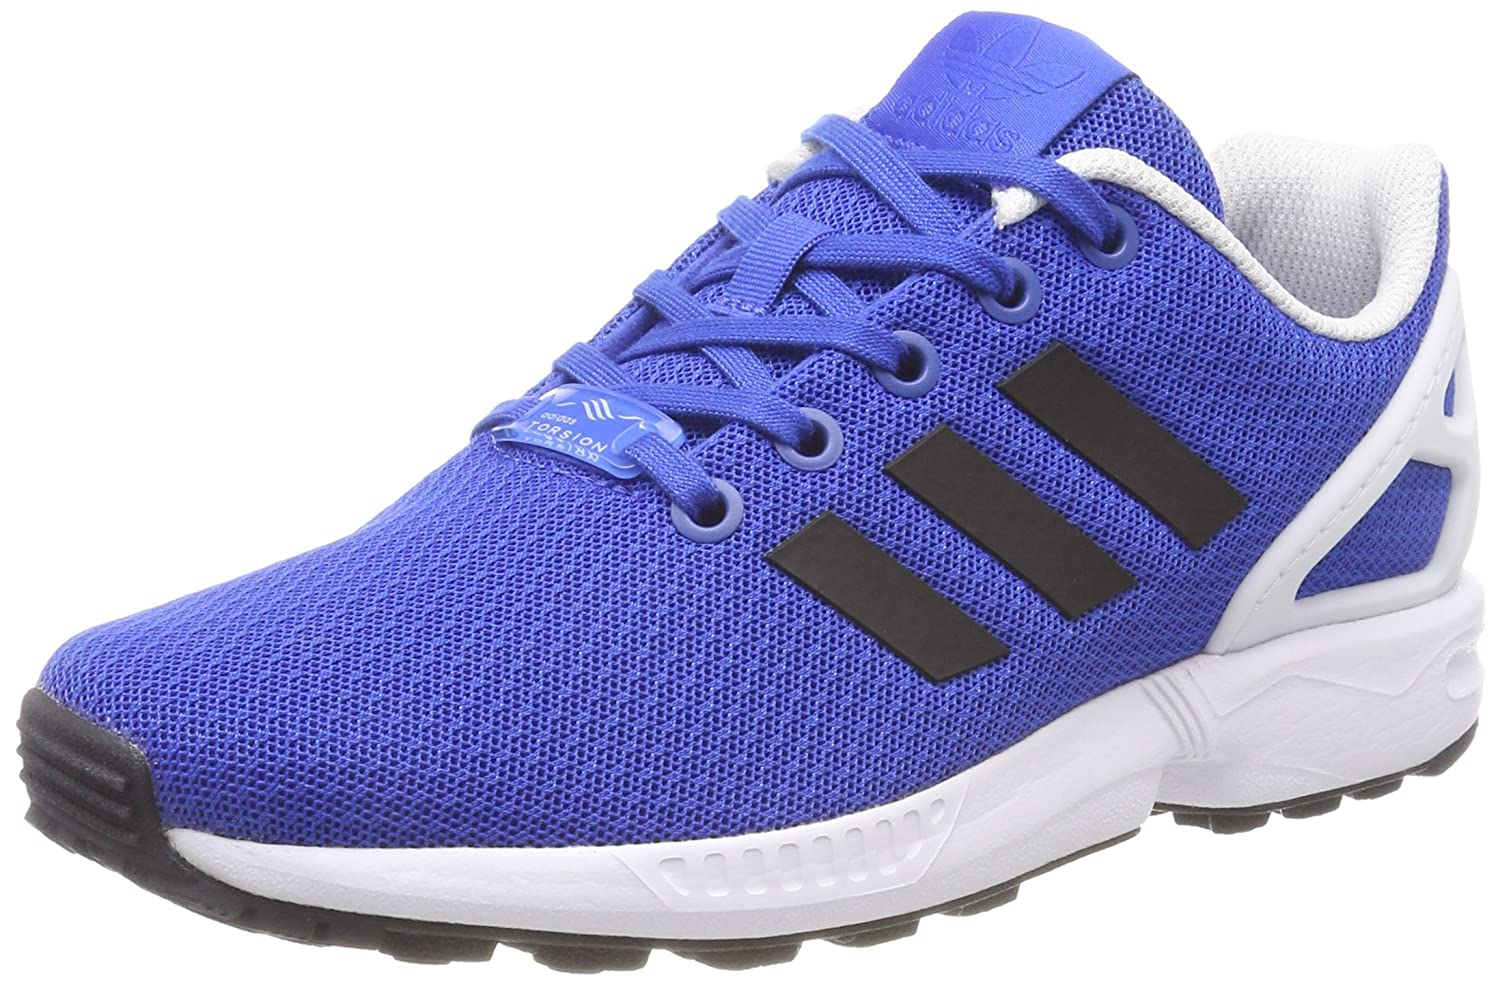 Adidas ZX Flux, Zapatillas para Niños 23 EU|Azul (Blue/Core Black/Ftwr White)